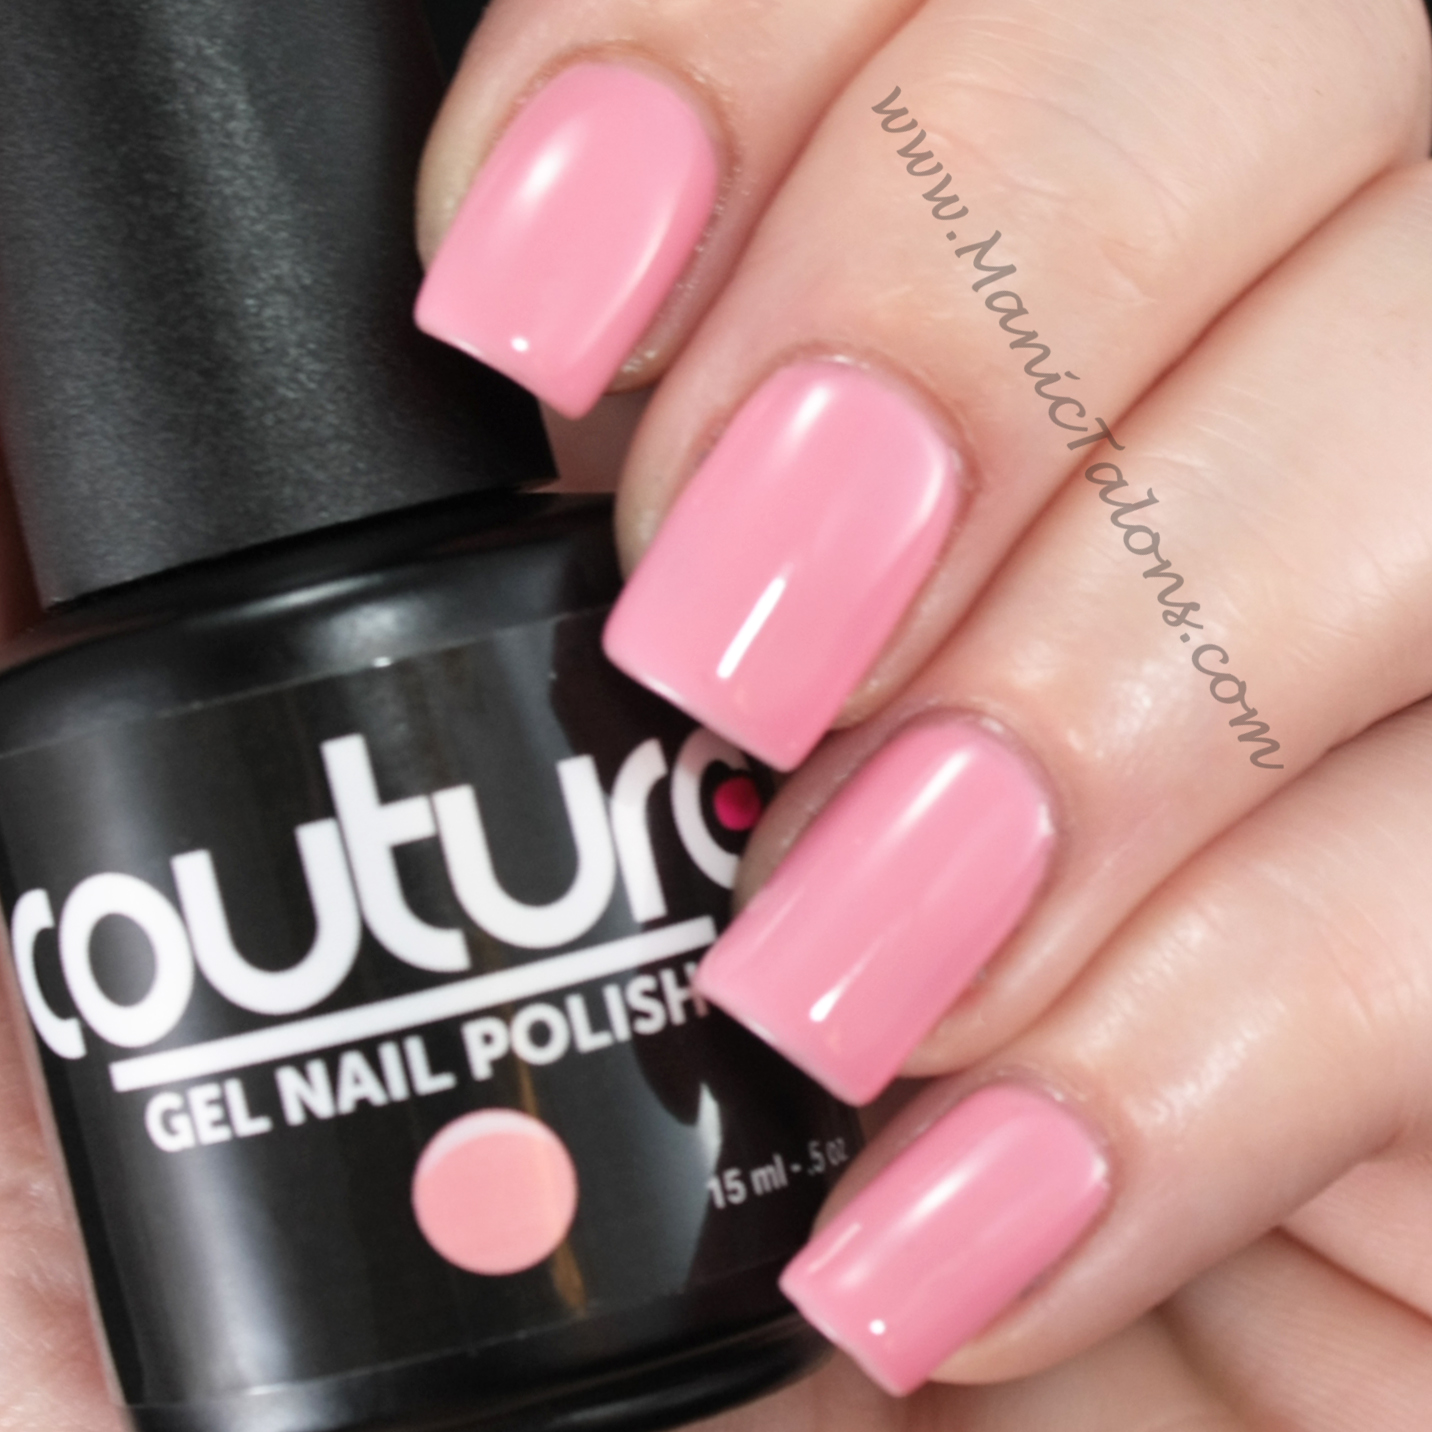 Couture Gel Nail Polish Sweet Cheeks Swatch